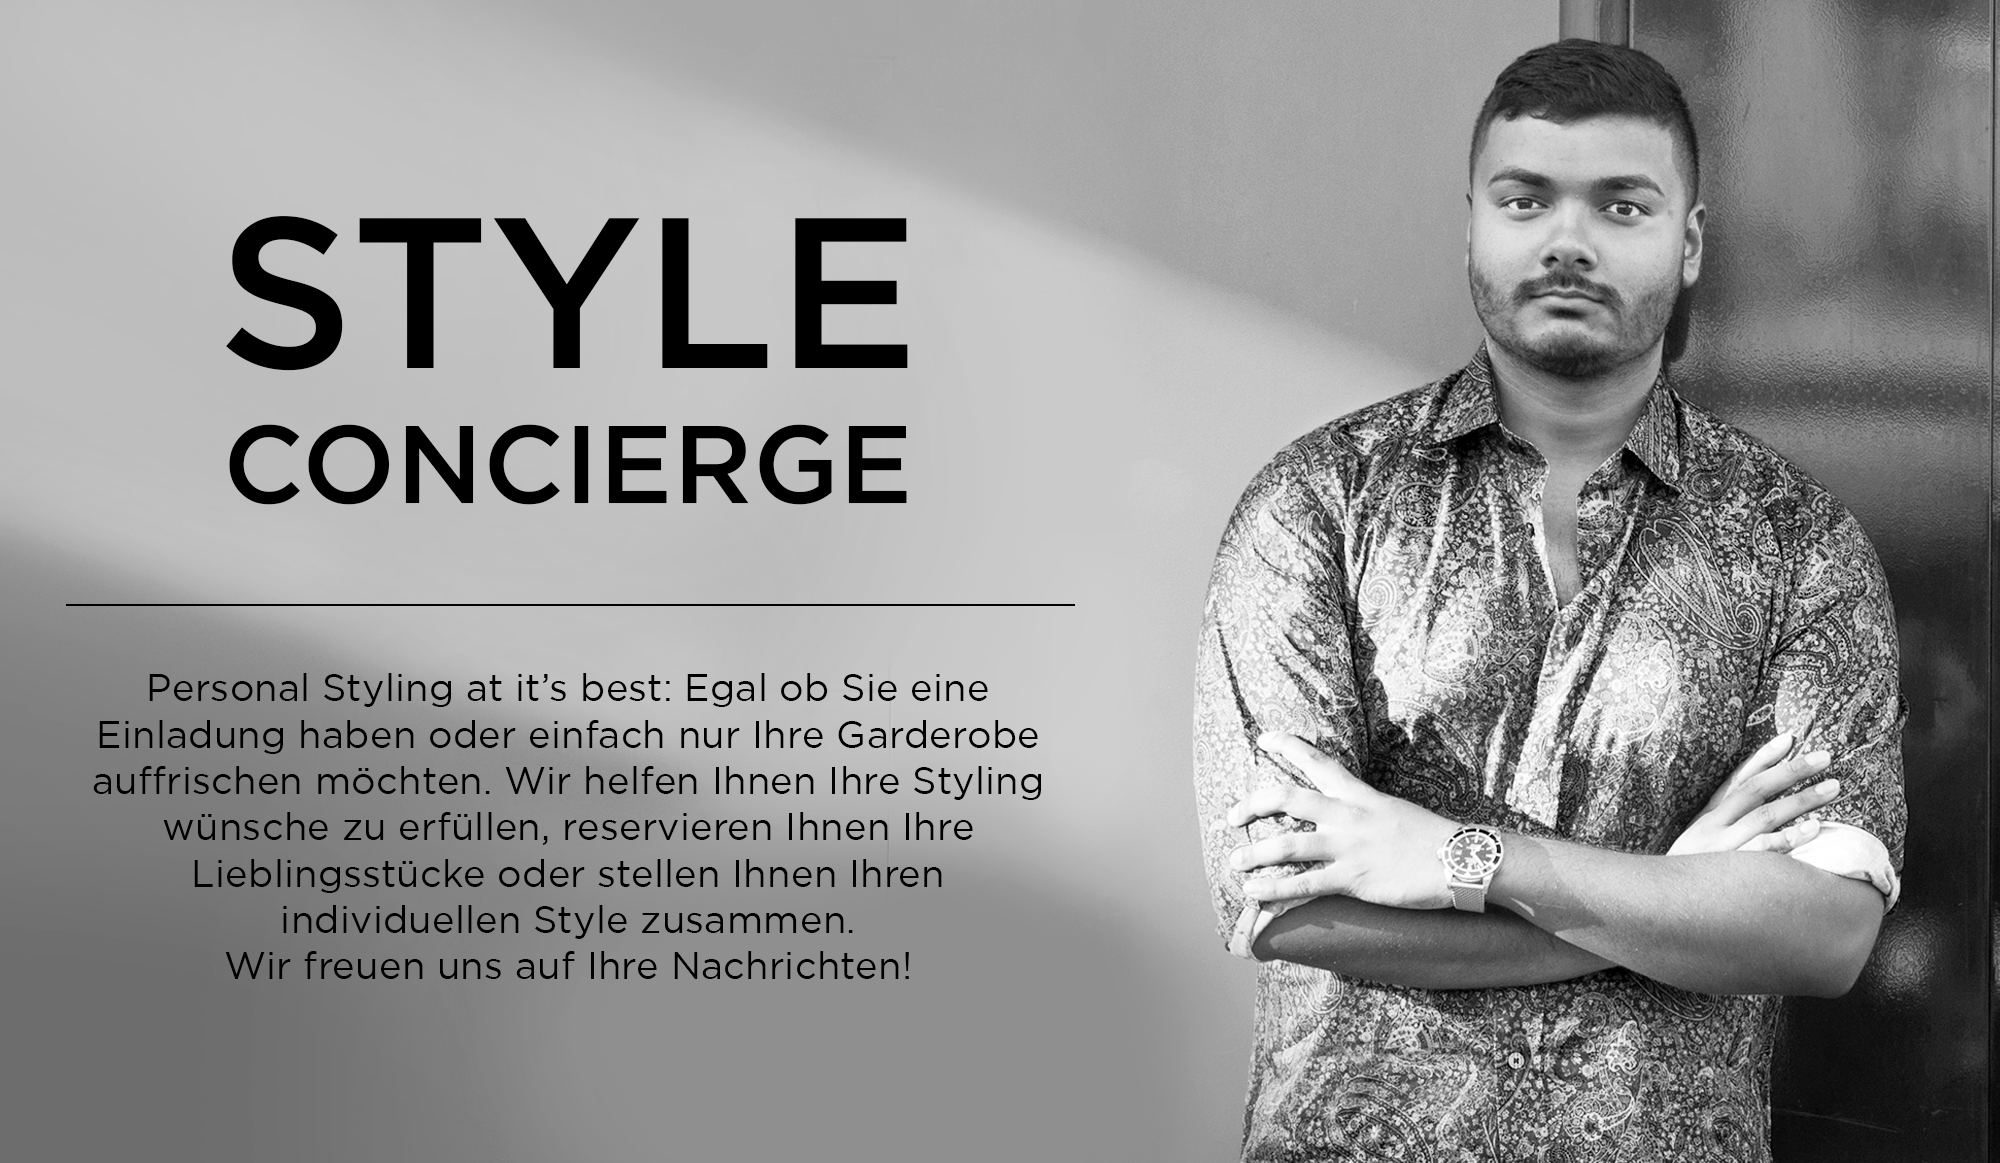 style-council-updated-text-lrg.png